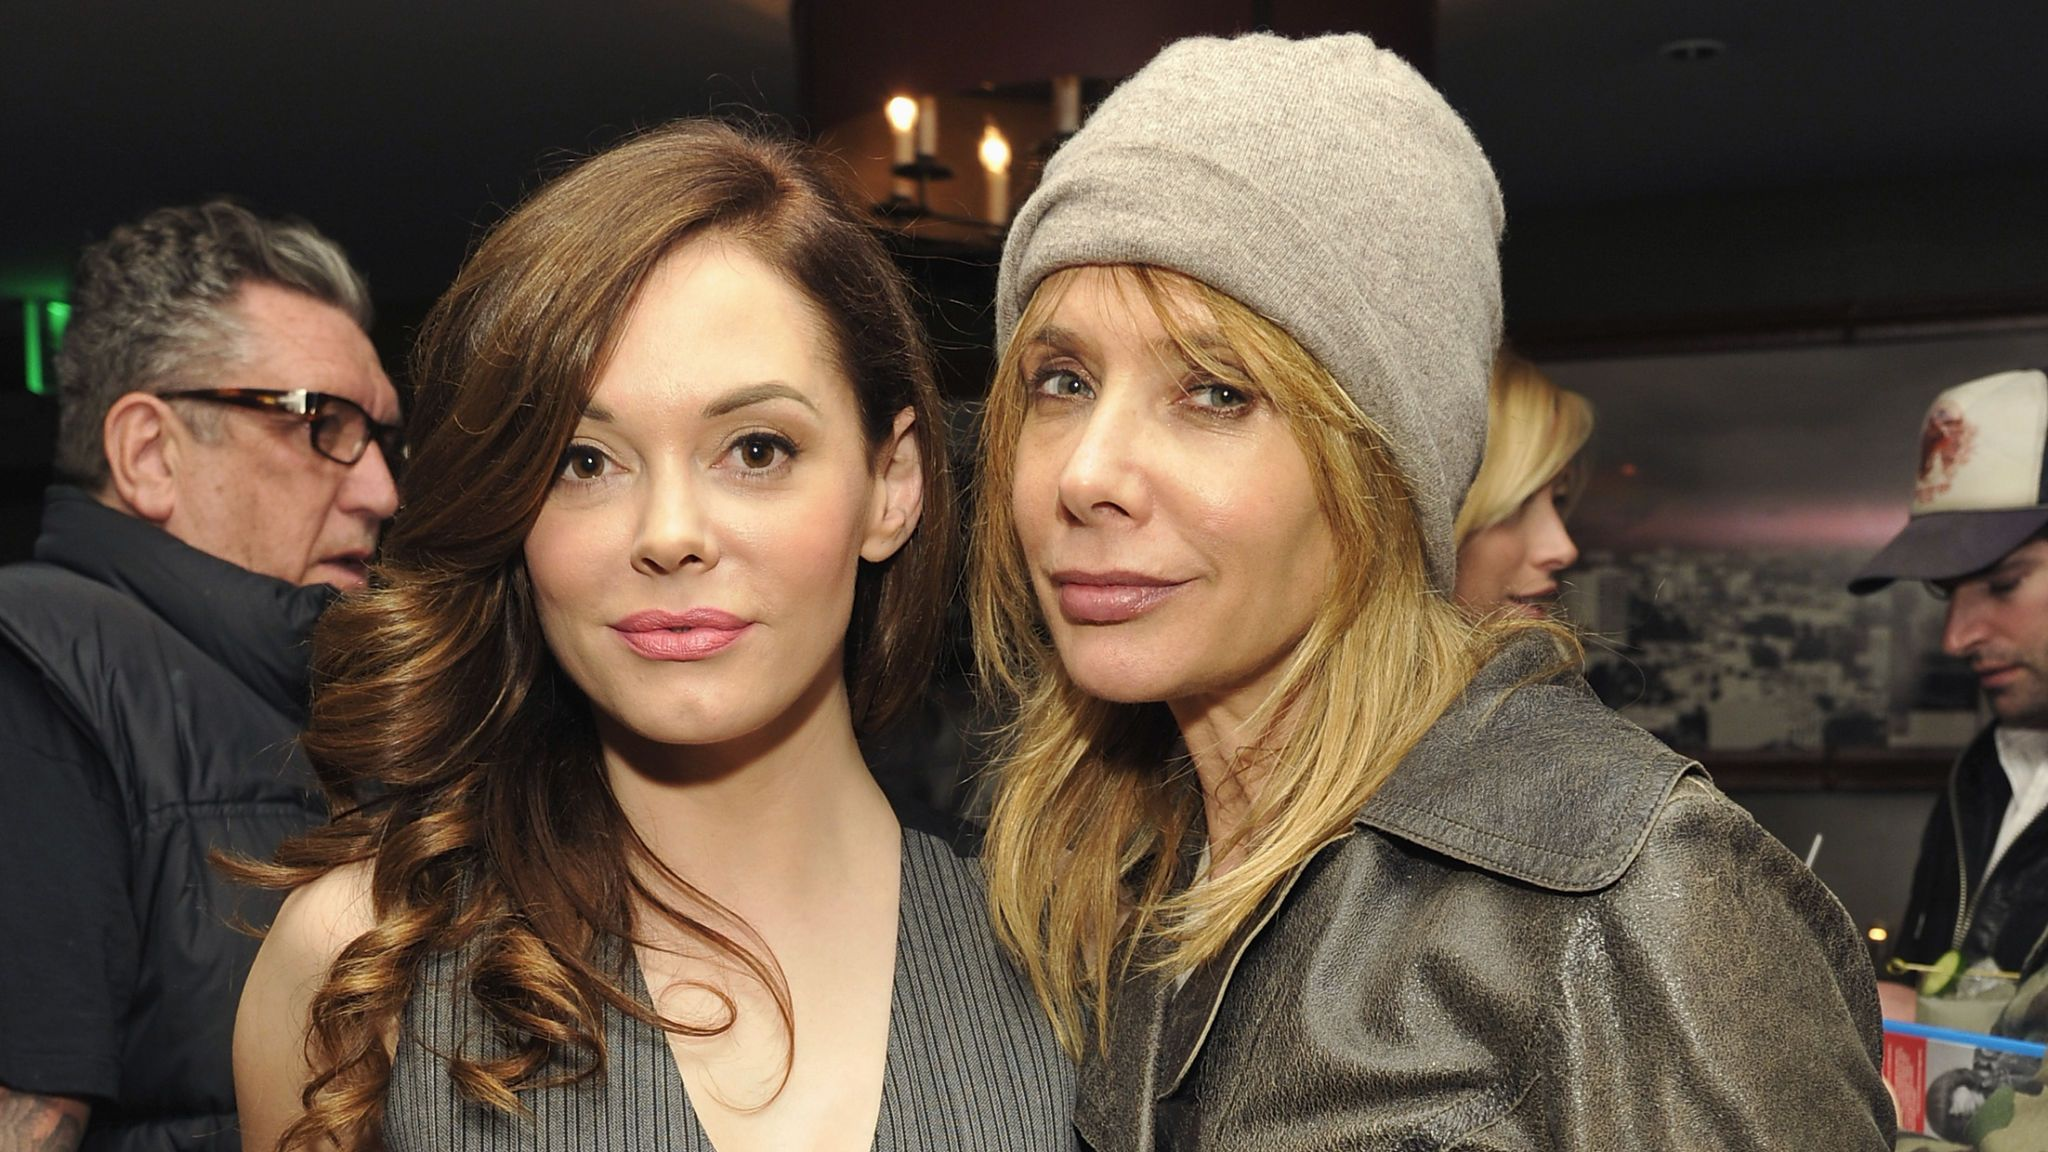 Rose McGowan and Rosanna Arquette pictured together in 2012